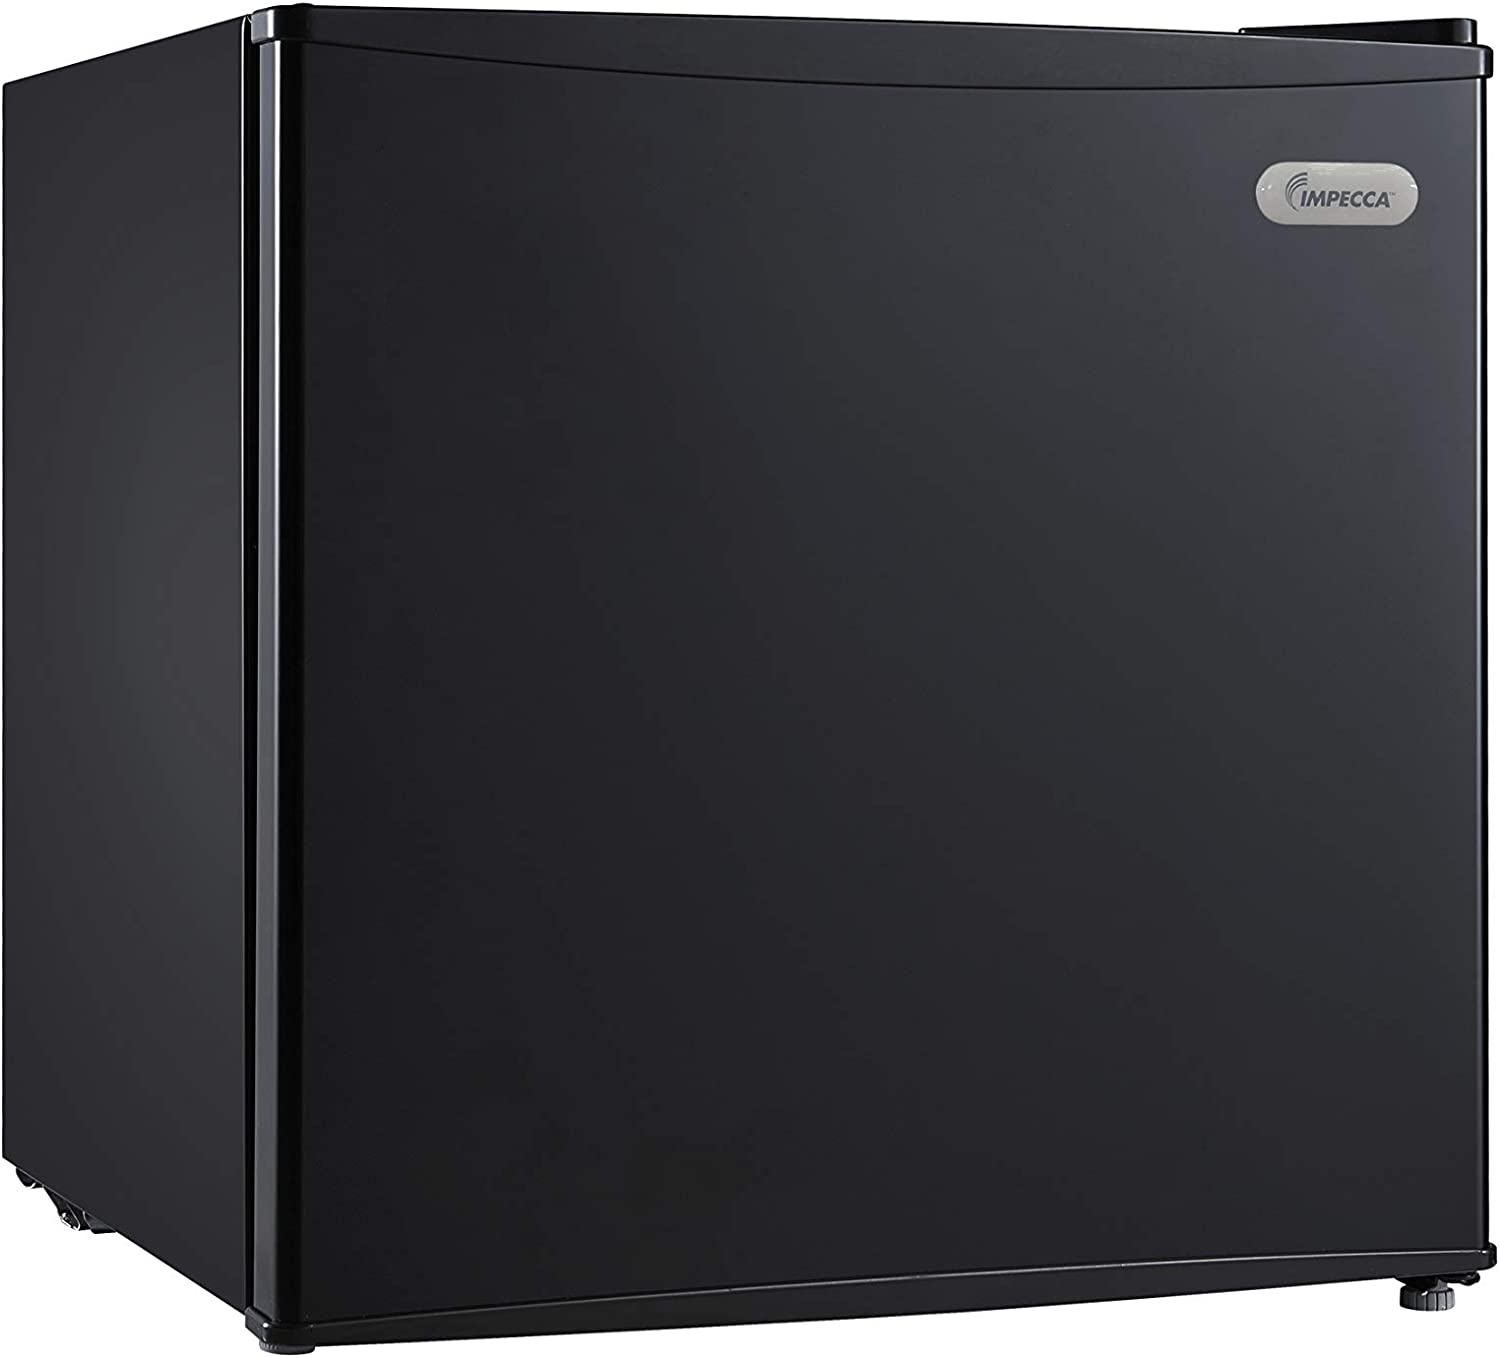 IMPECCA Upright Freezer 1.1 Cubic Feet Energy Star with Reversible Door, Removable Shelves and Adjustable Thermostat - Black